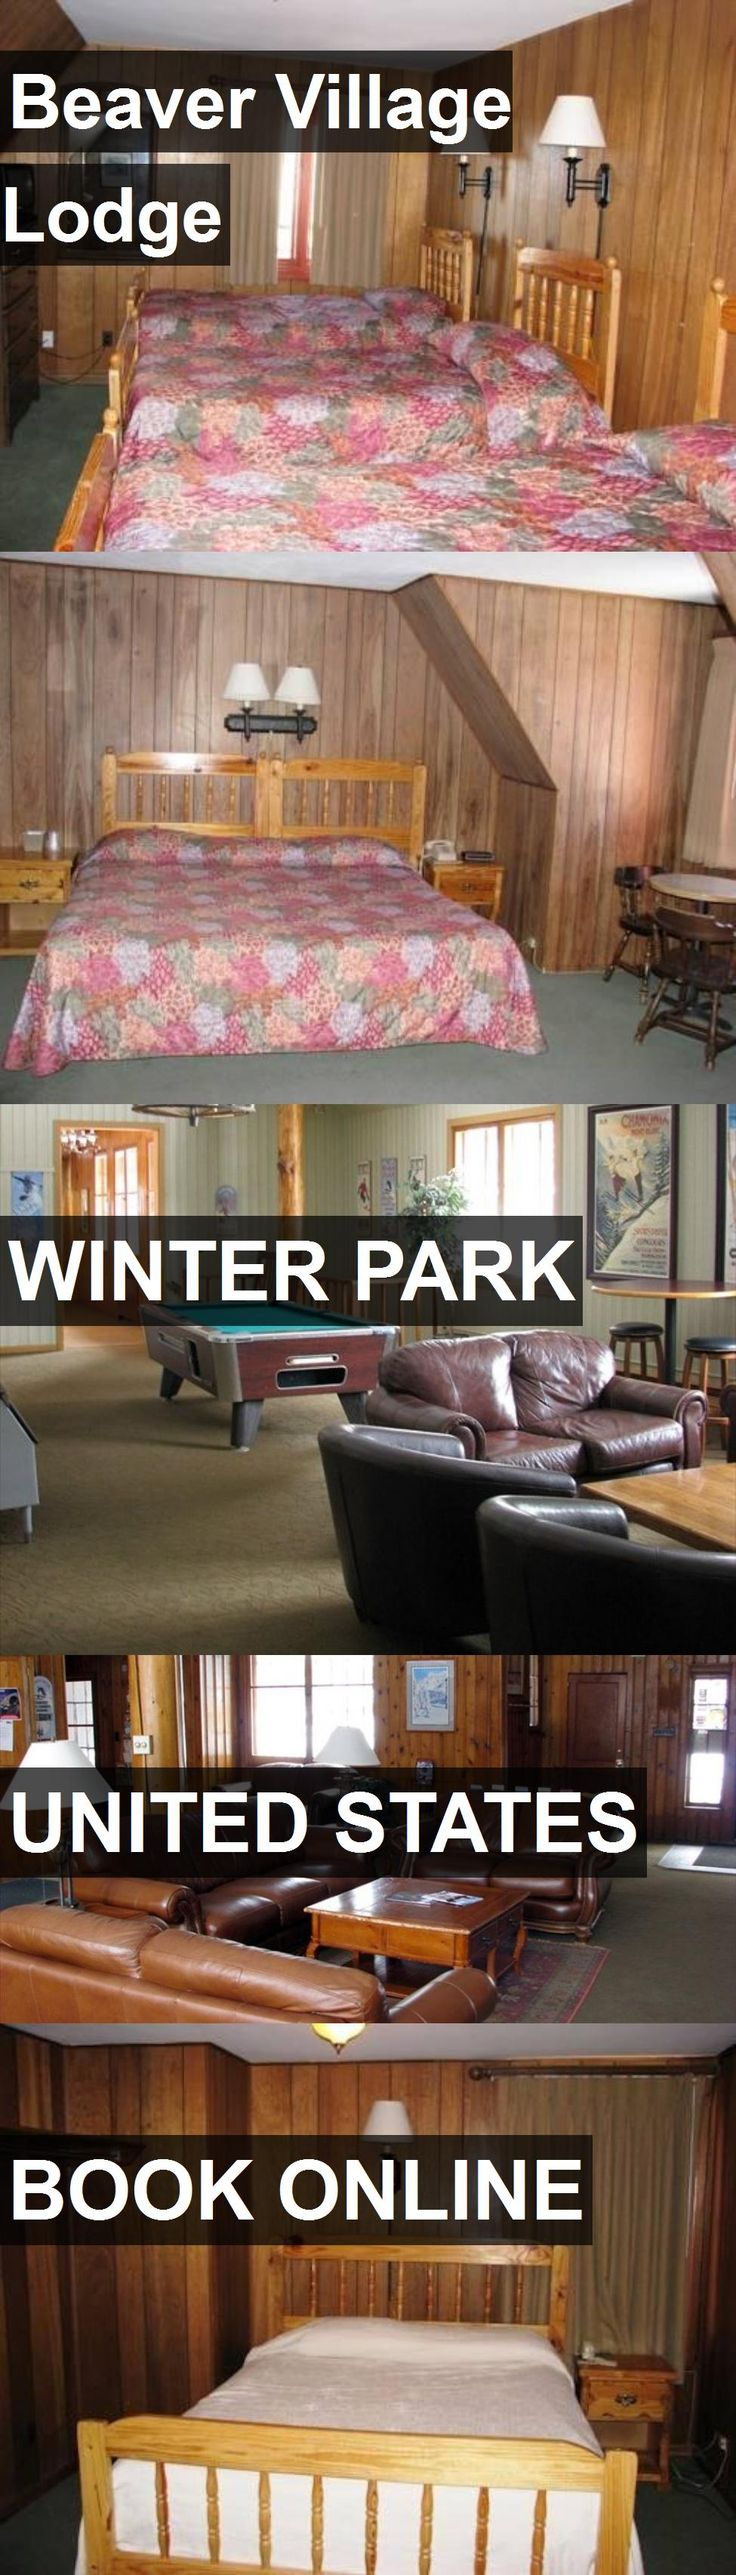 Hotel Beaver Village Lodge in Winter Park, United States. For more information, photos, reviews and best prices please follow the link. #UnitedStates #WinterPark #BeaverVillageLodge #hotel #travel #vacation